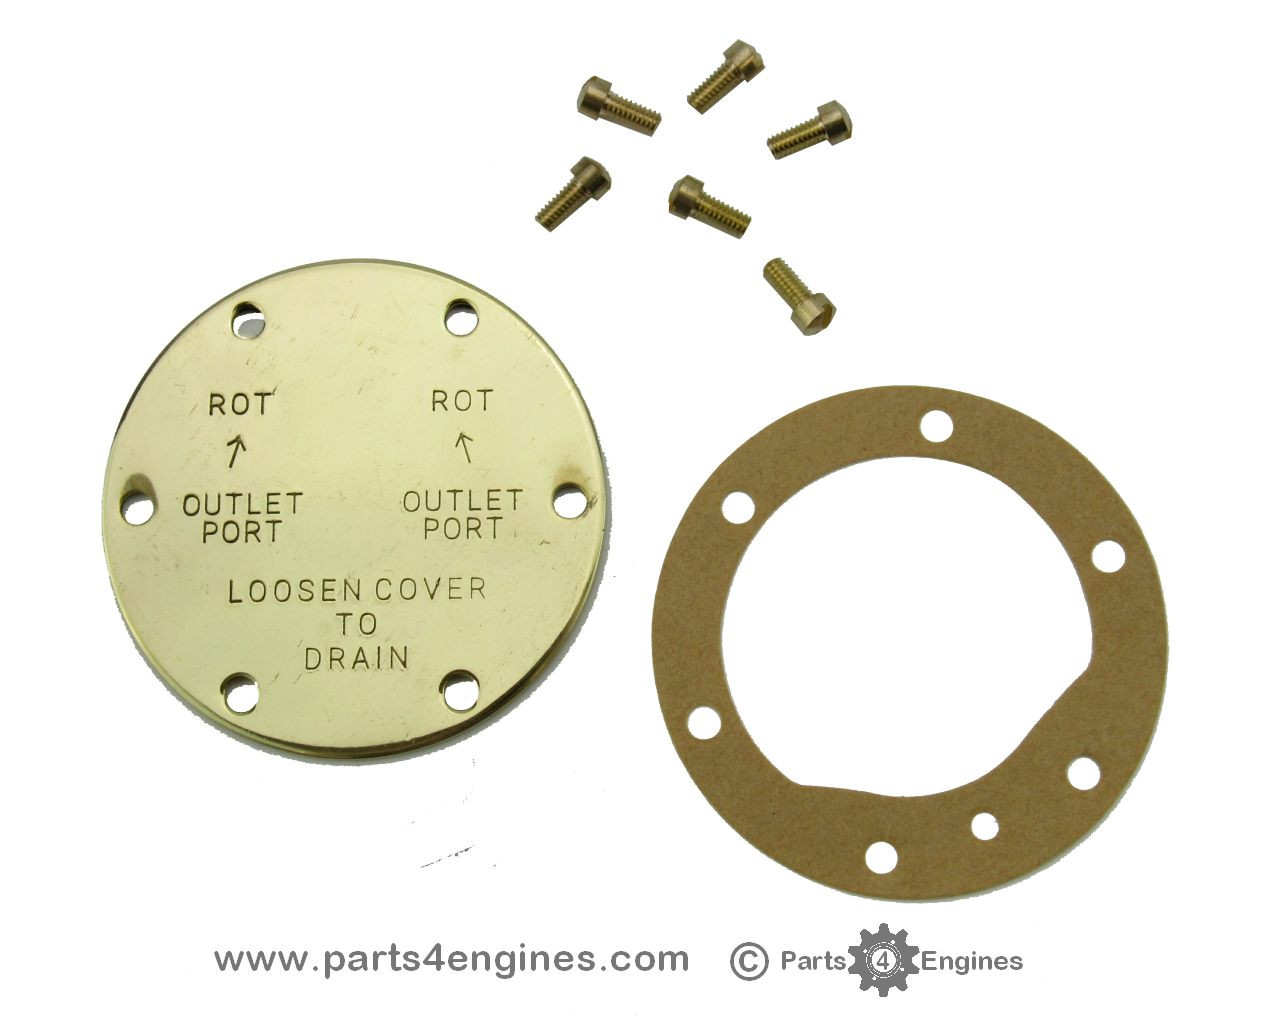 Perkins M90 raw water pump end cover kit from parts4engines.com